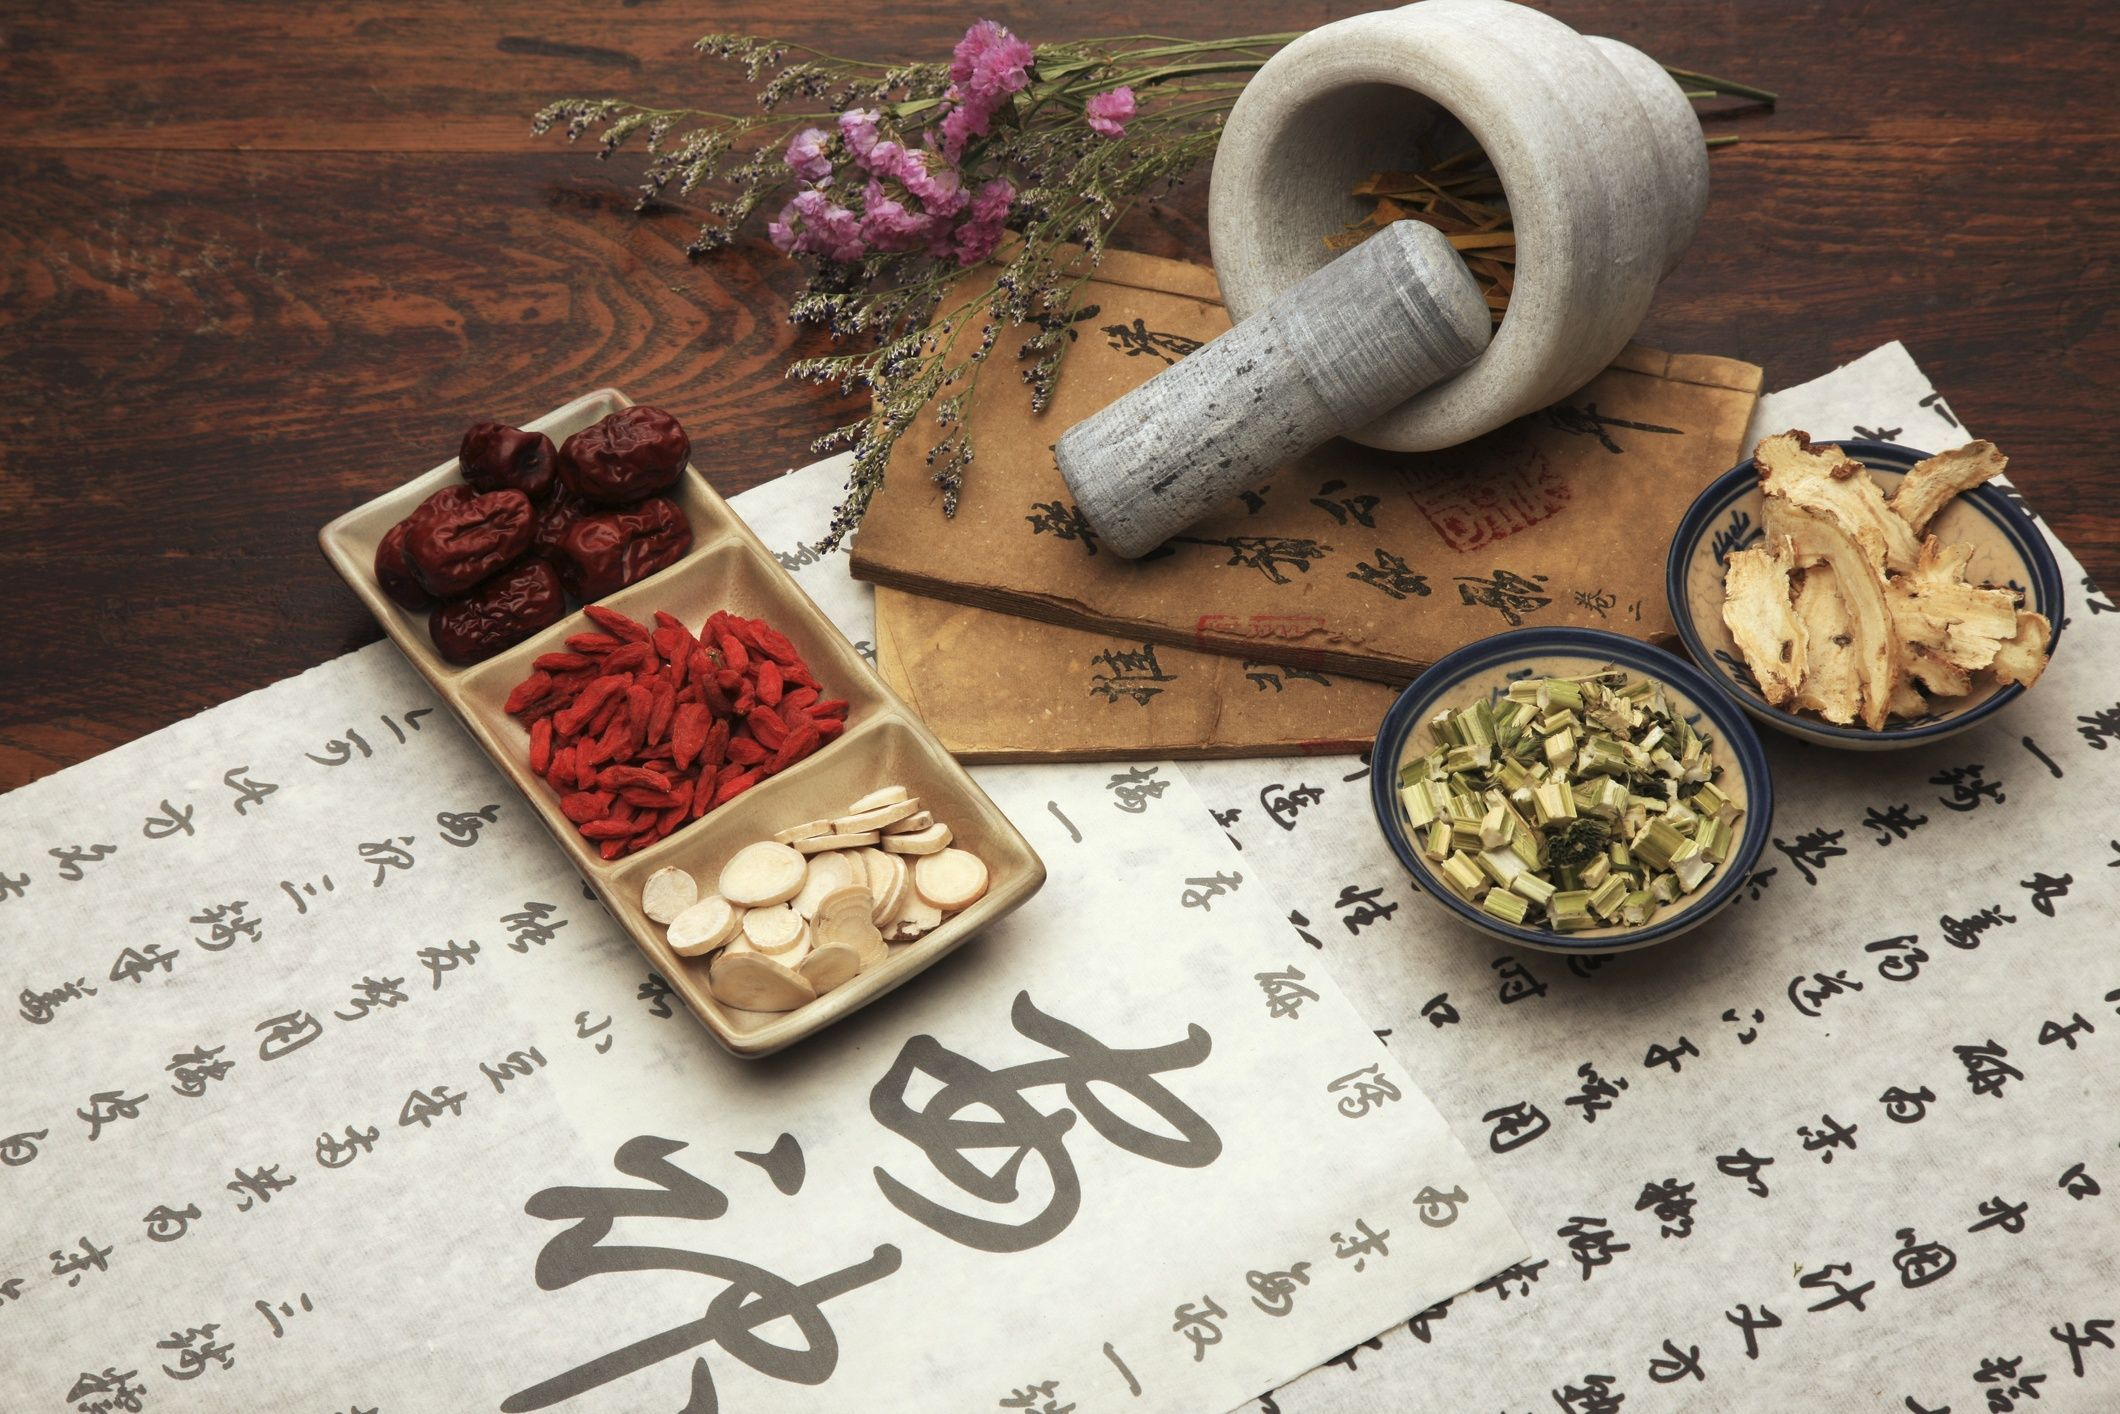 cles-medecine-chinoise-wd